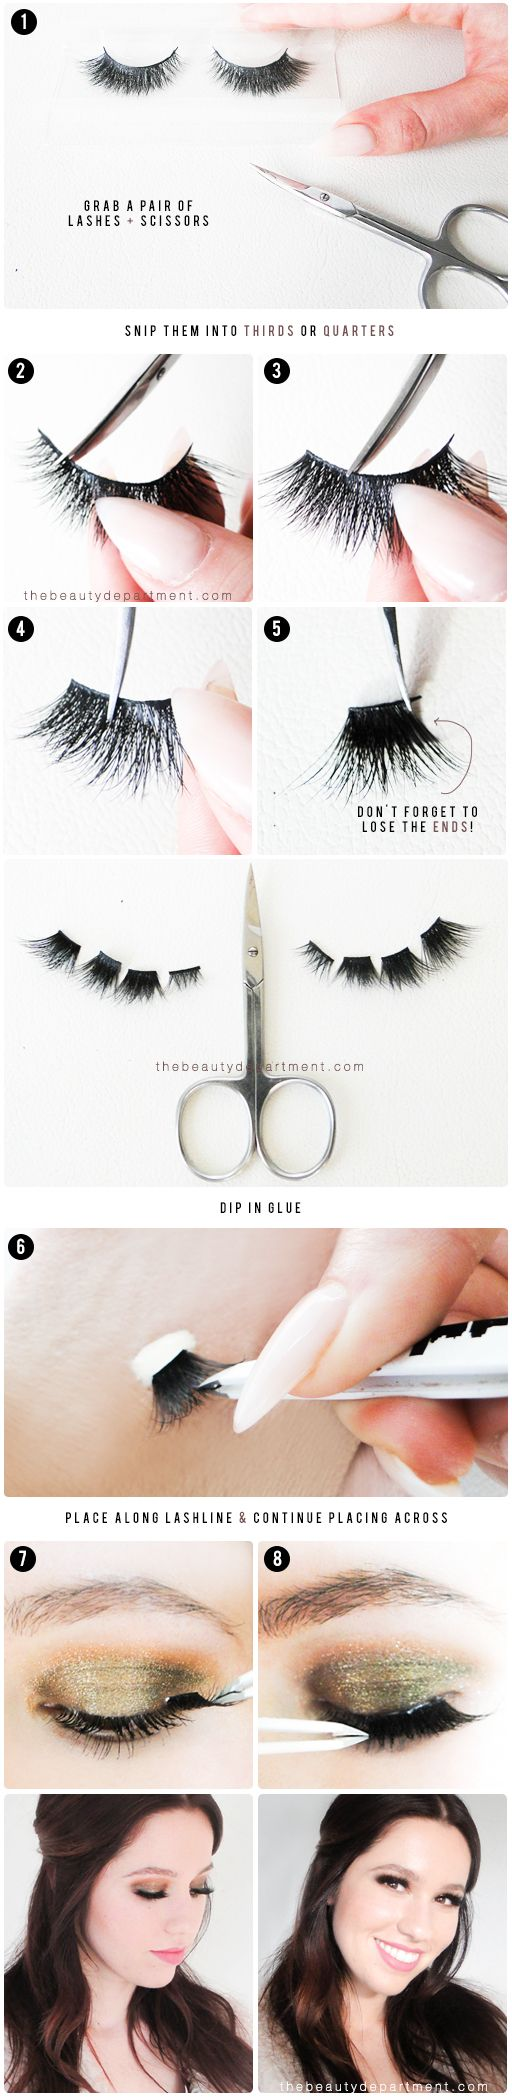 False lashes cause a lot of problems if you don't have years of practice! They slide, an end will come unglued, the middle will bubble up… it's enough to turn people off from using them after one failed attempt. But if you try this, I bet you'll be thrilled with the result! Here's how: TOOLS: […]